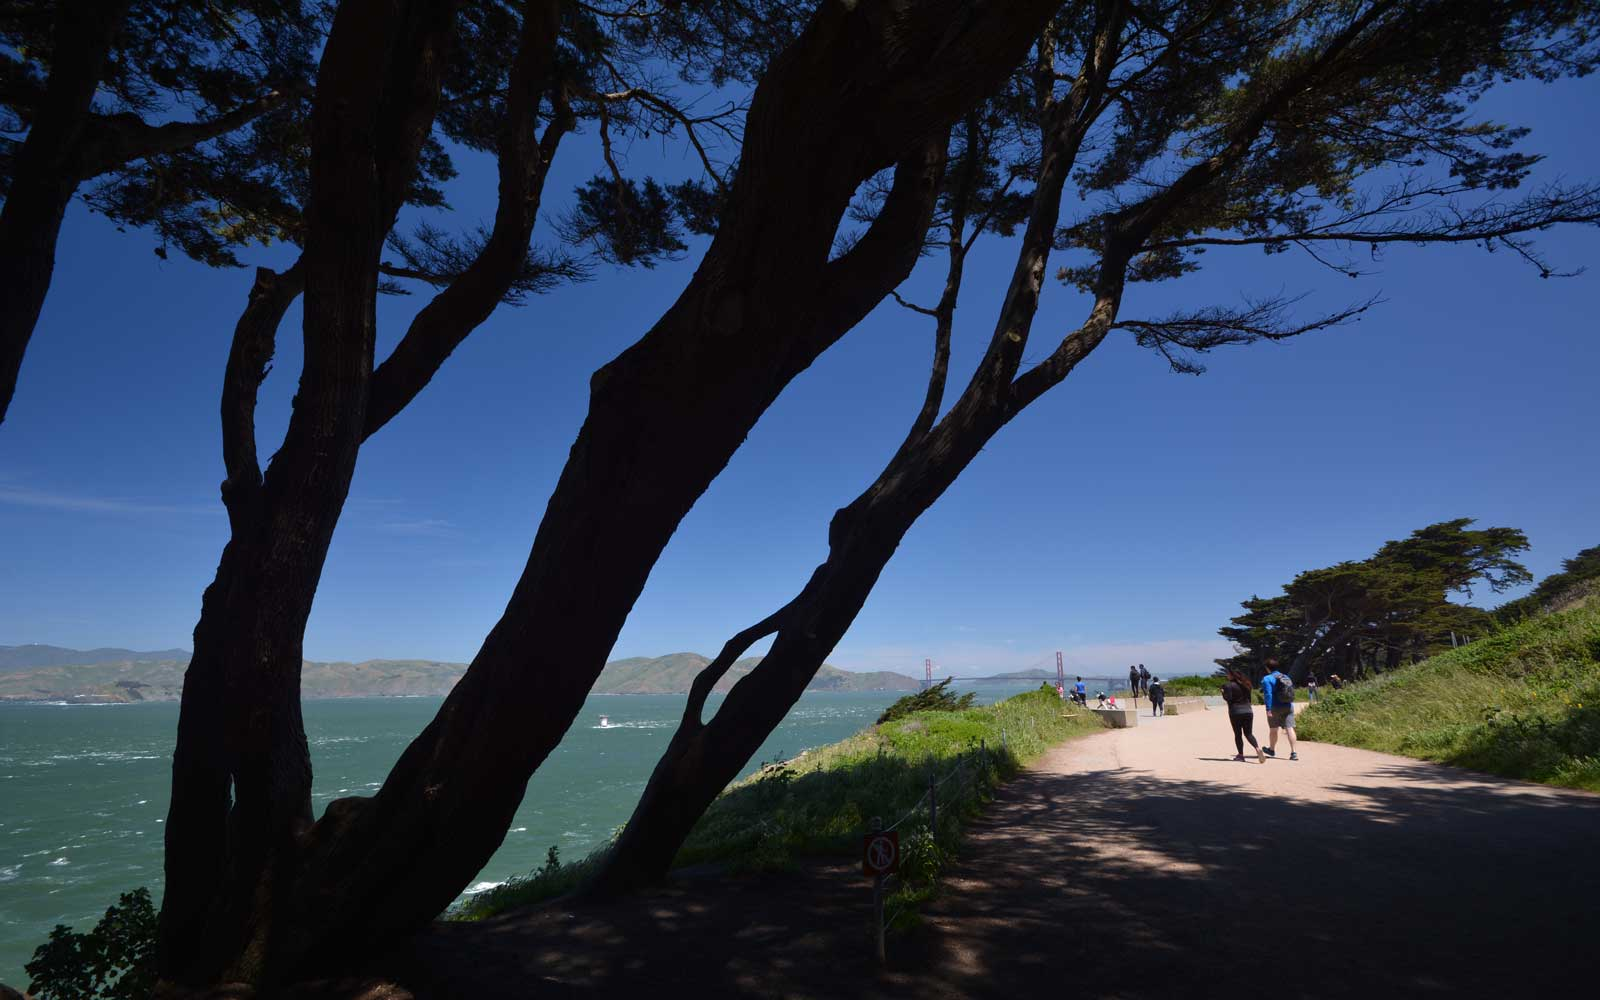 View from a path in Lands End park in San Francisco, looking over coastal water with the Golden Gate Bridge in the distance